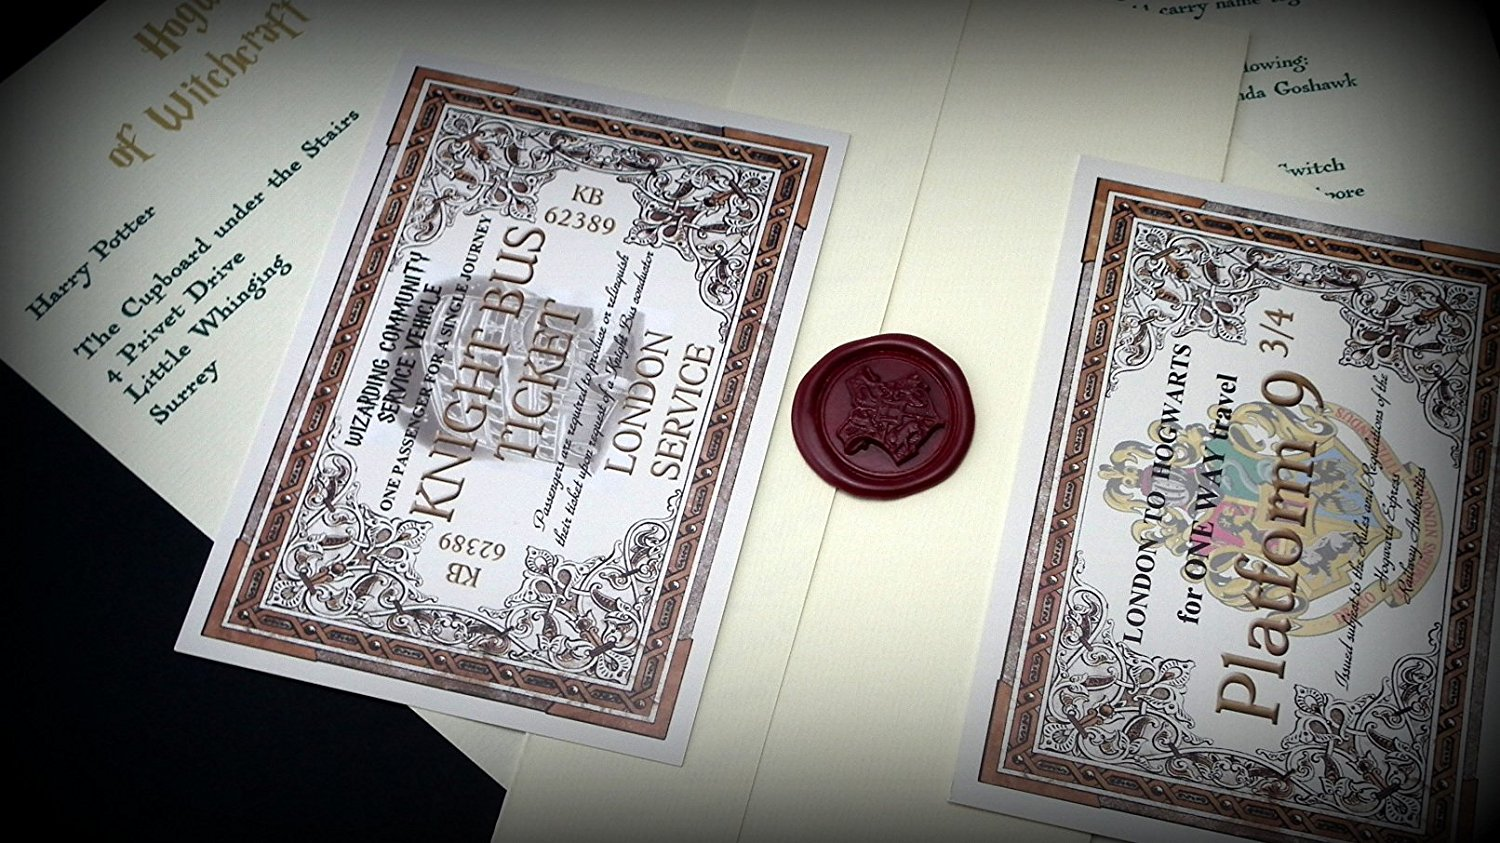 Hogwarts Acceptance Letter from planetsforsale